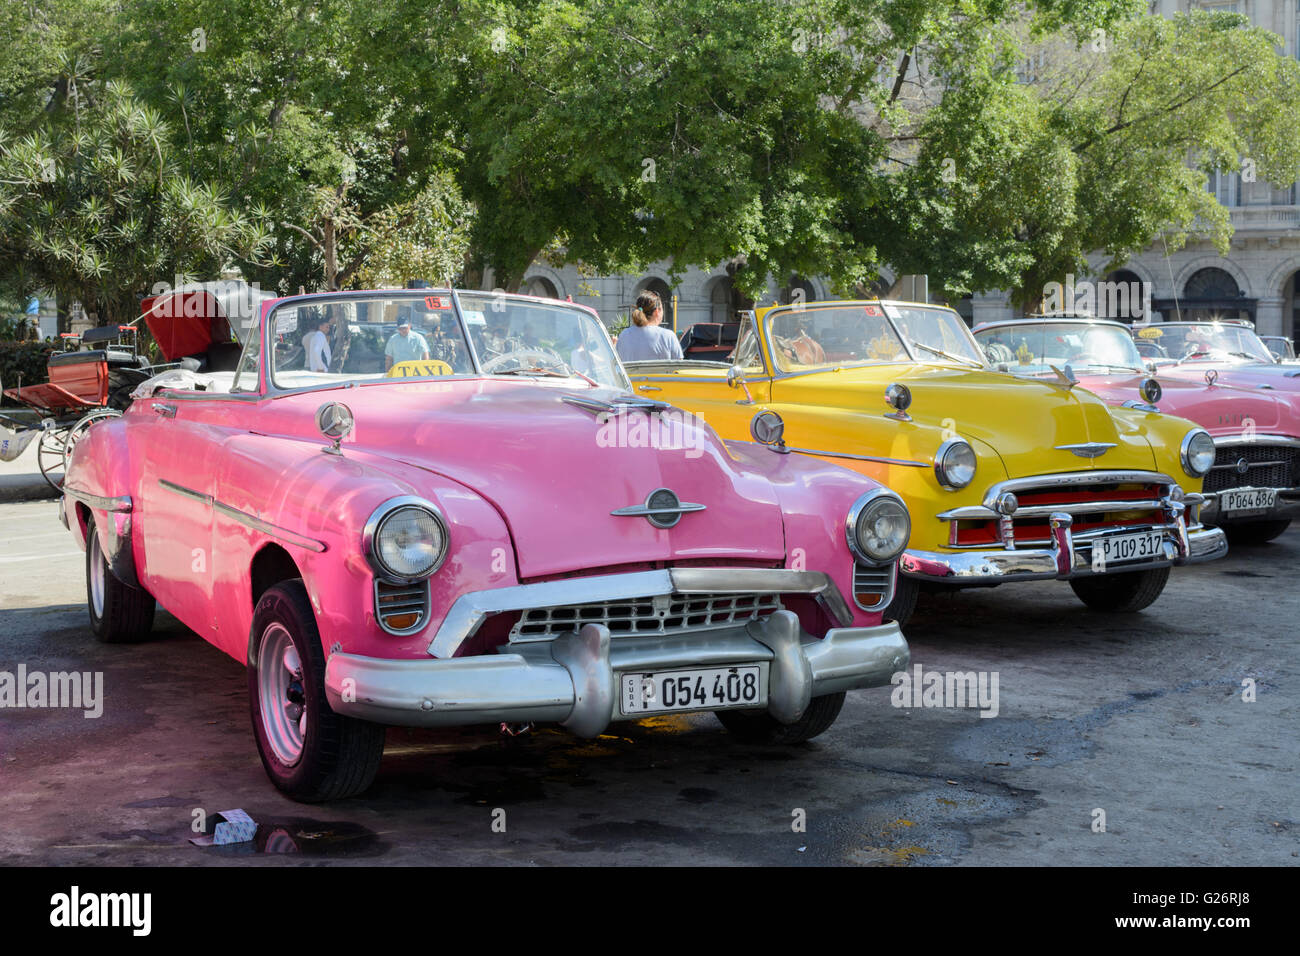 Vintage American cars (Oldsmobile, Chevrolet and Buick) in Parque ...